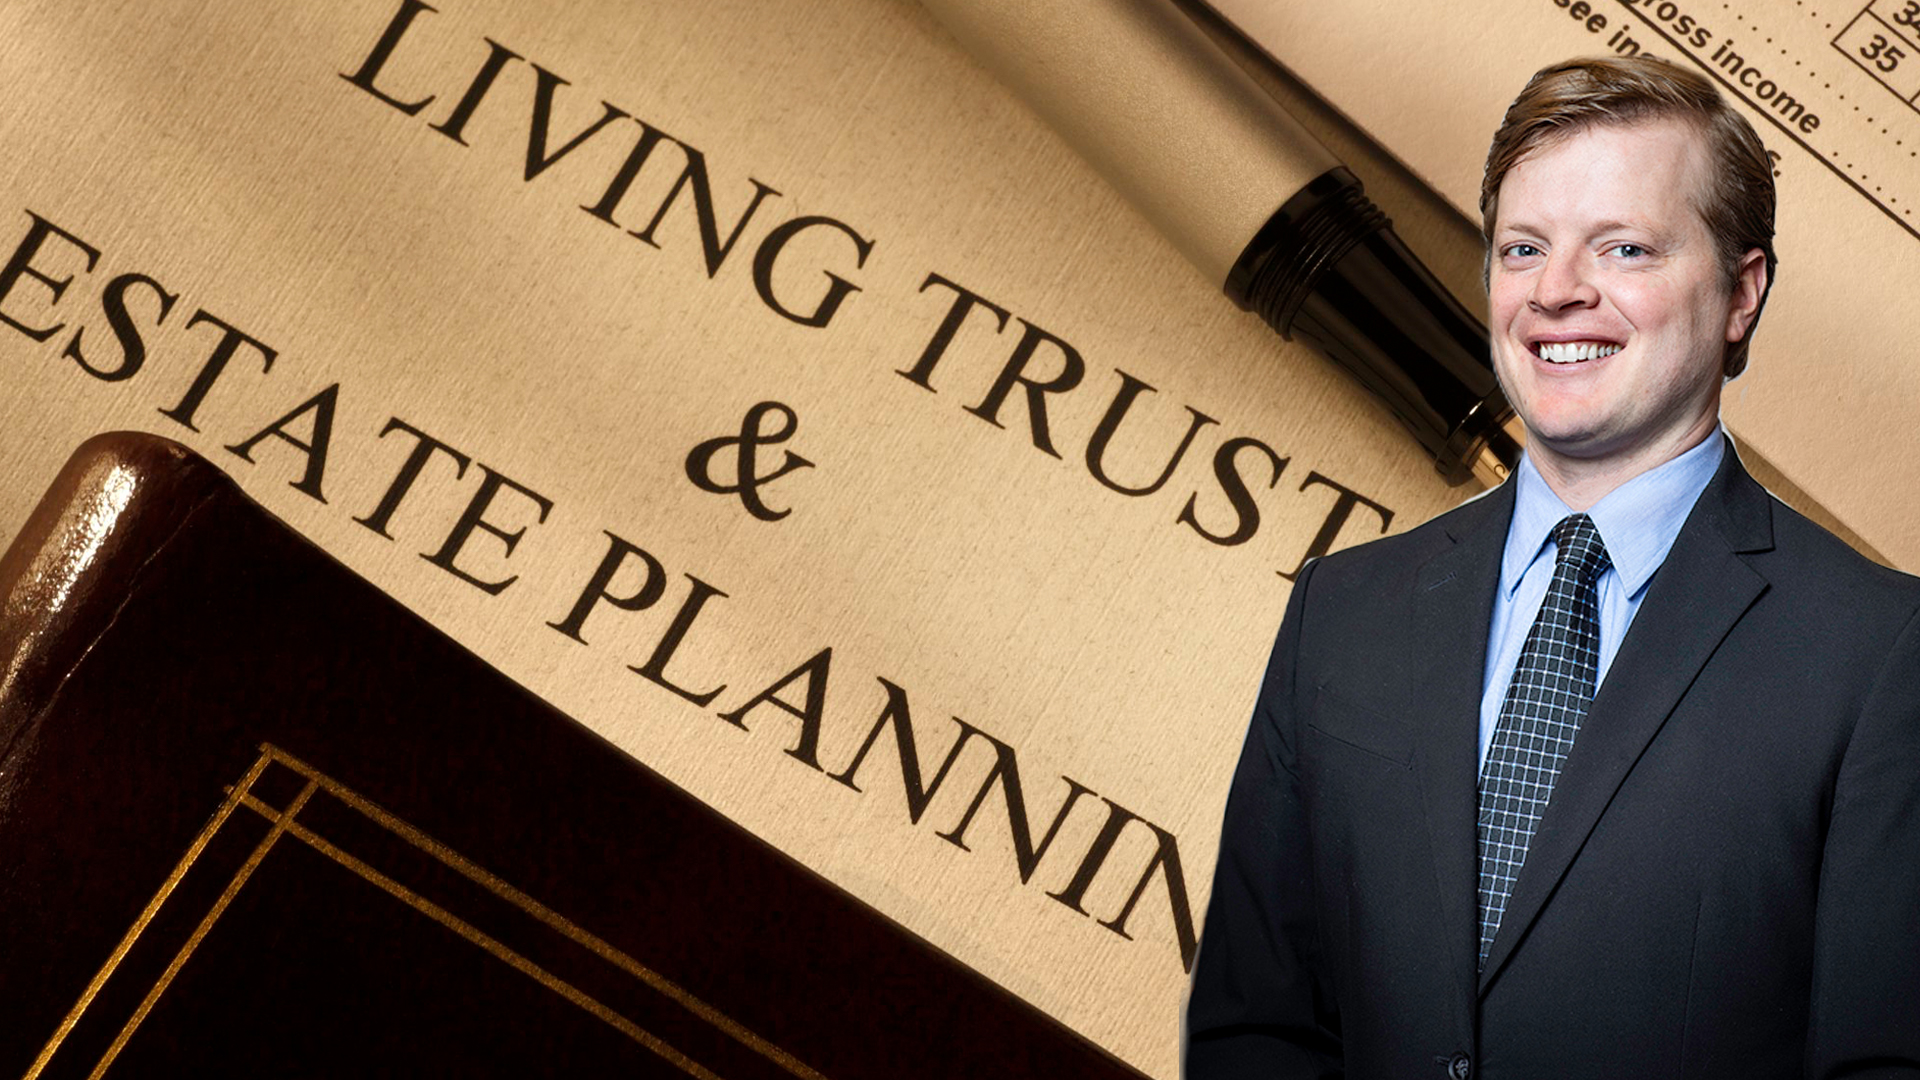 Trusts, Wills, and Estates: Plan Ahead!